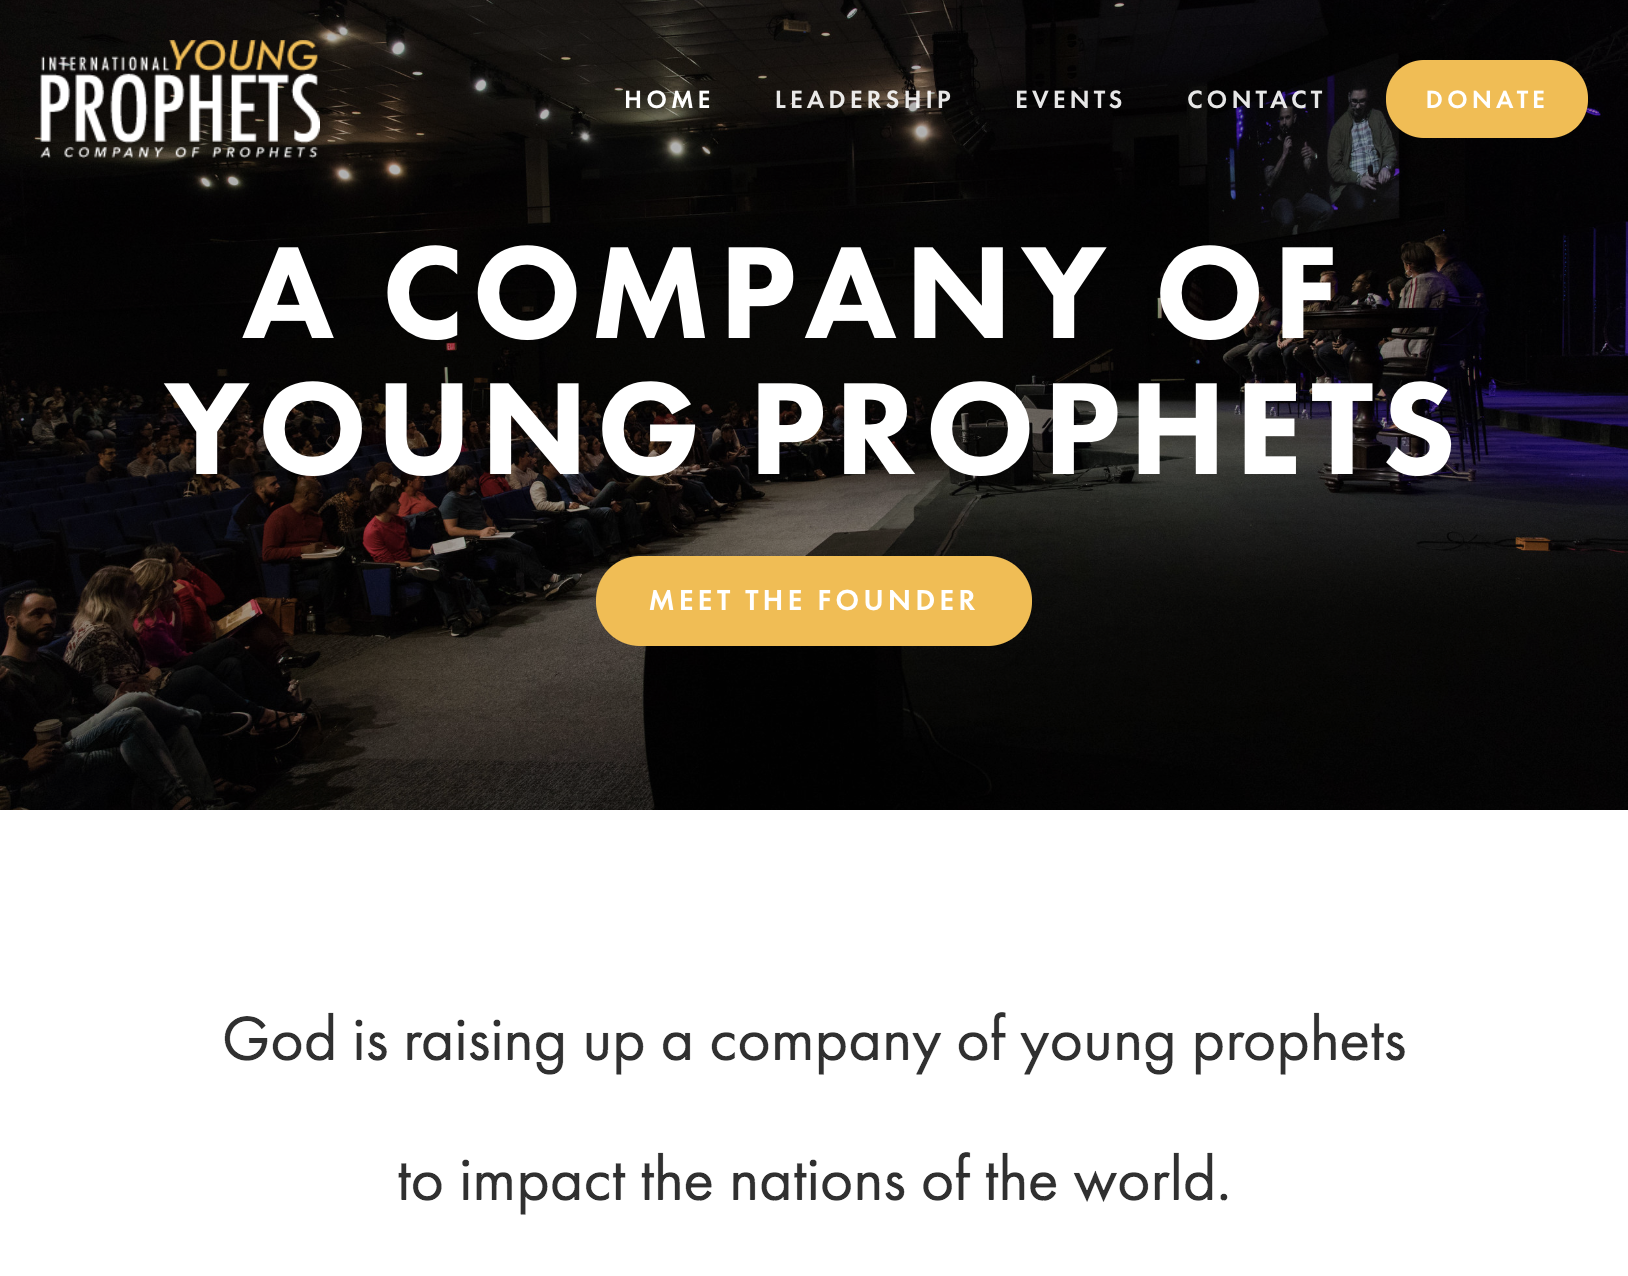 Found-Creative-Lab-International-Young-Prophets.png